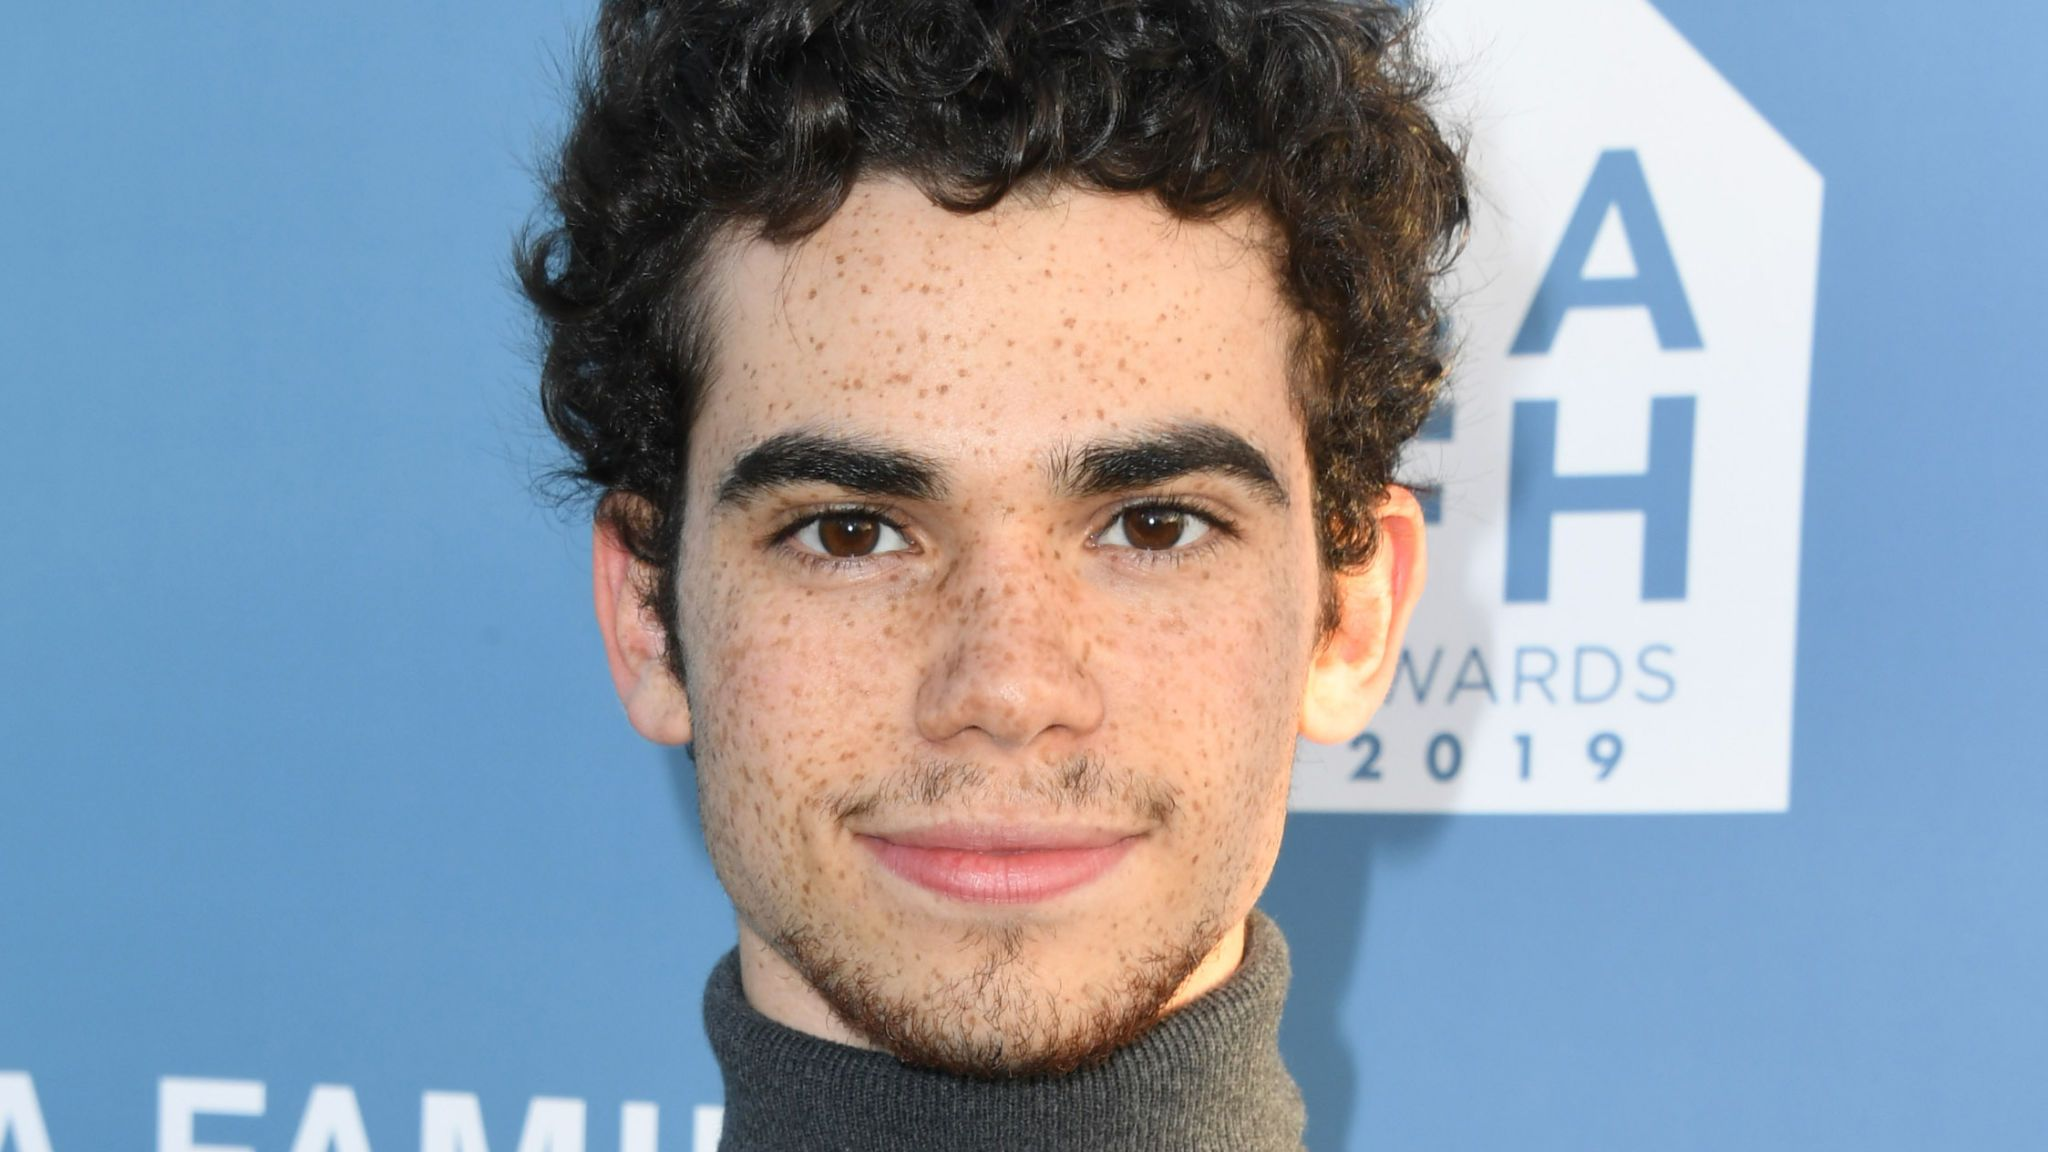 Cameron Boyce attends LA Family Housing Annual LAFH Awards And Fundraiser Celebration at The Lot on April 25, 2019 in West Hollywood, California